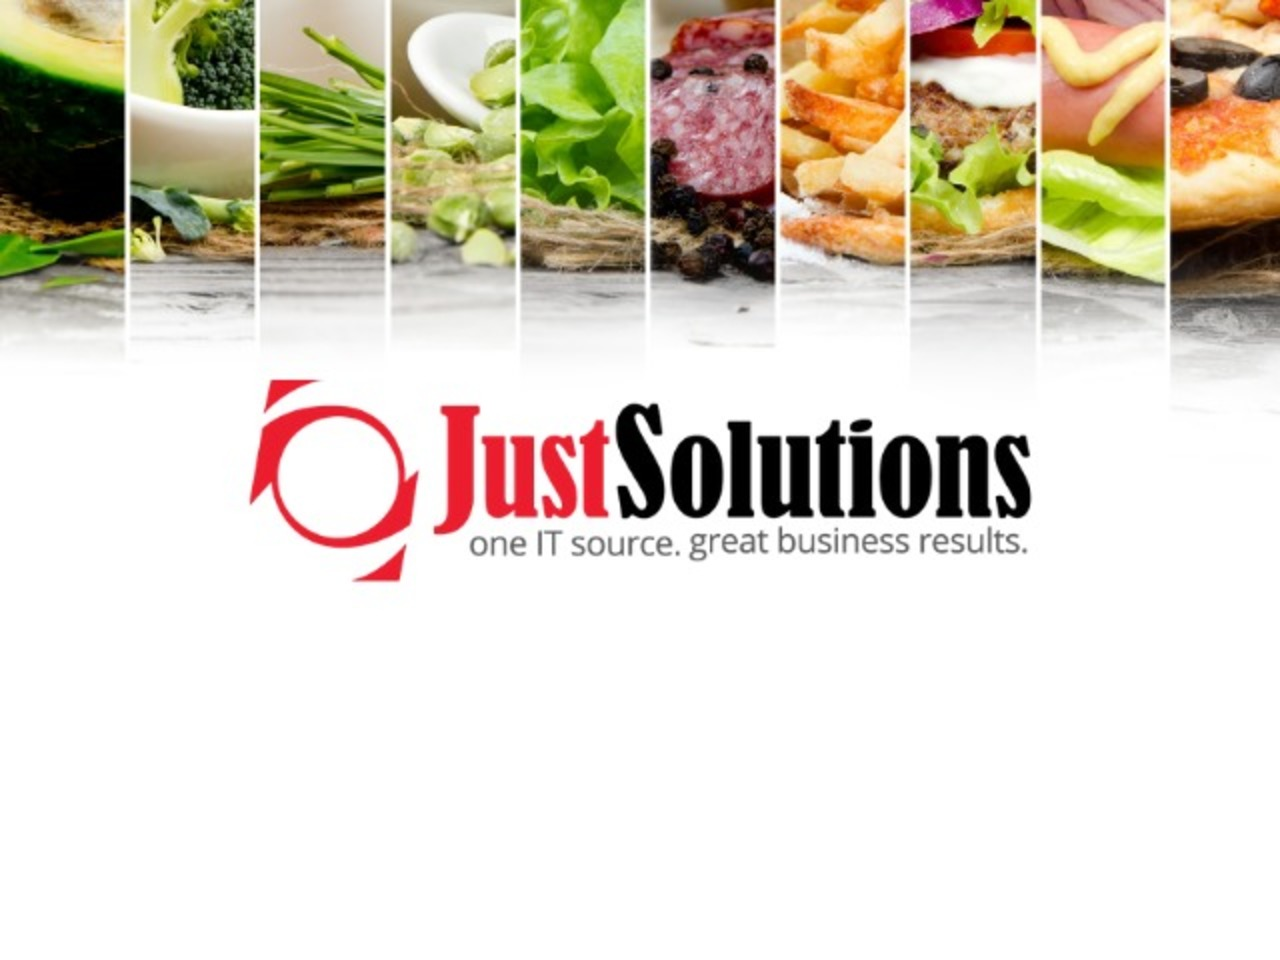 Just Solutions 30 Days of Giving